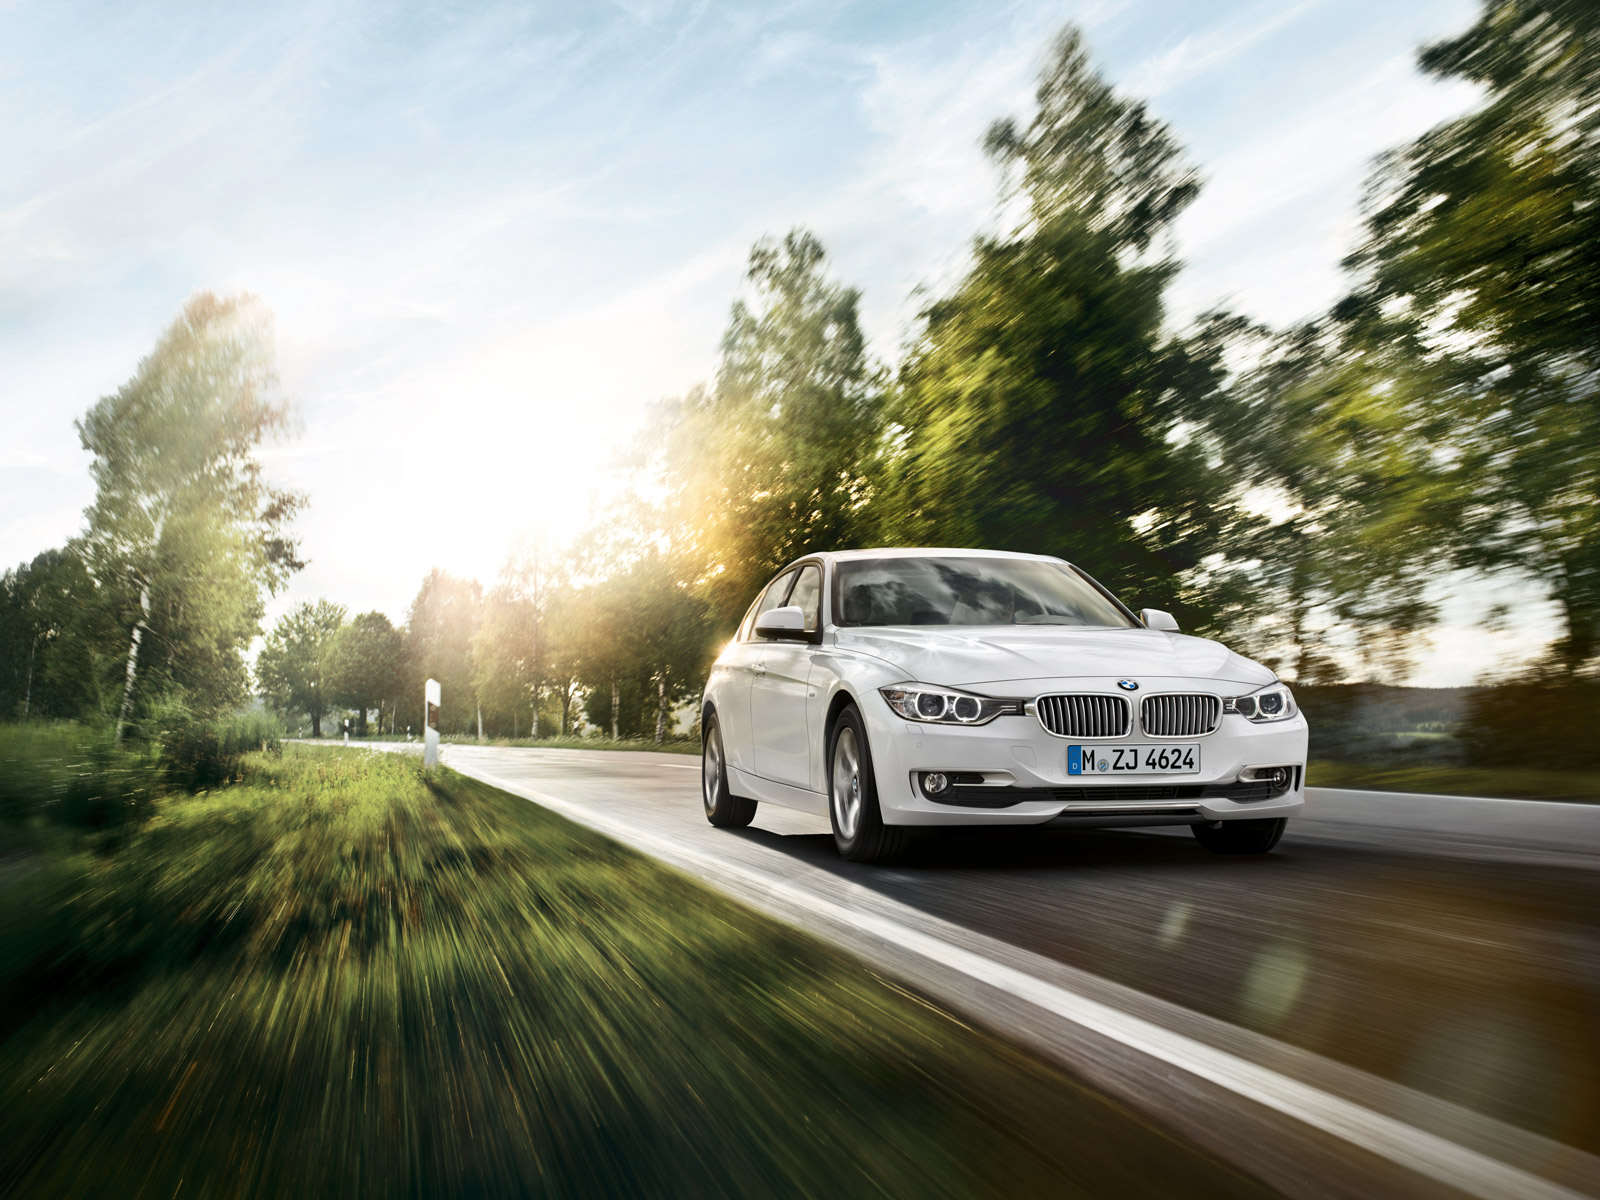 BMW_3series_wallpaper_22_1600